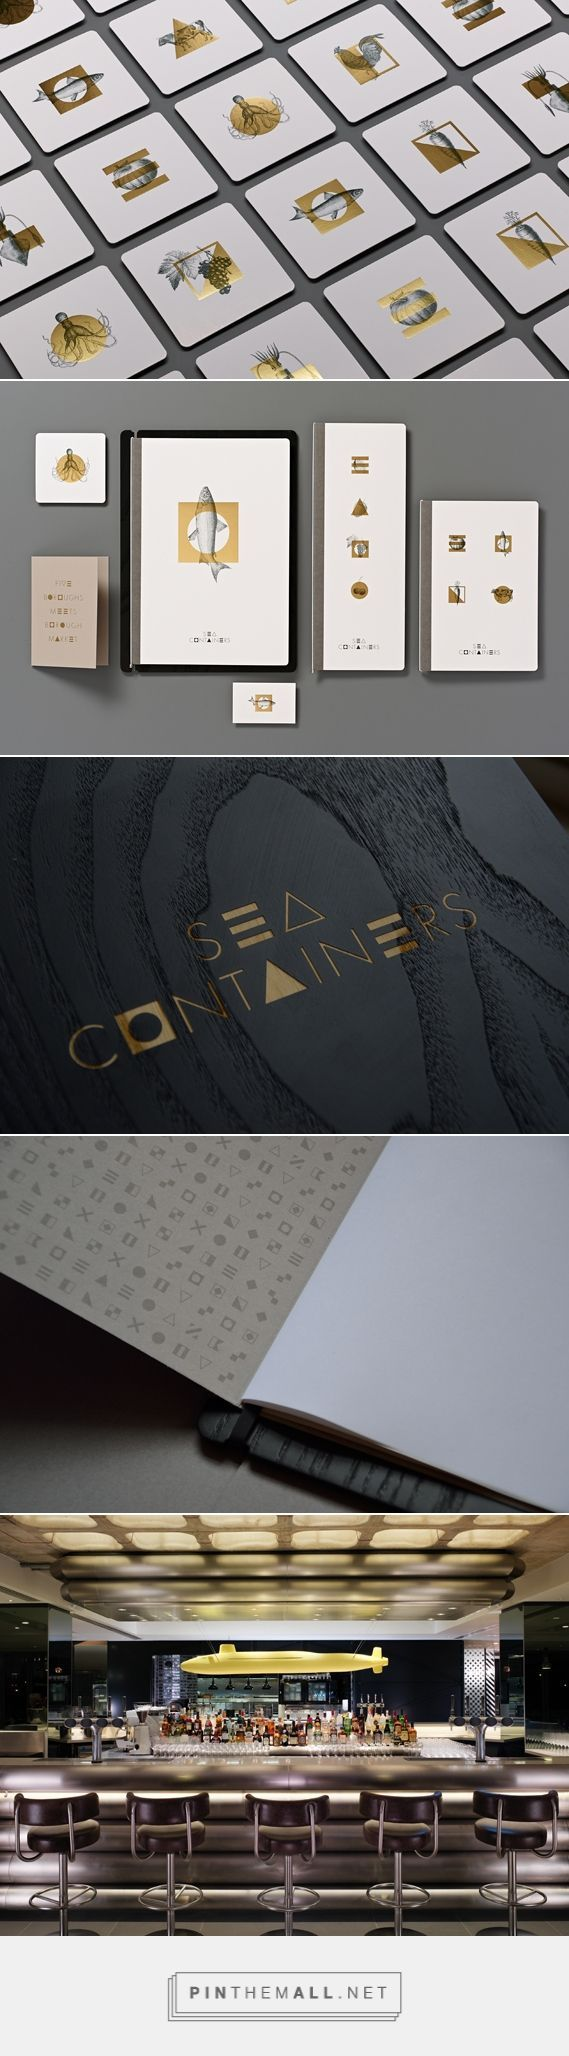 Sea Containers Restaurant Branding by Magpie Studio | Fivestar Branding – Design and Branding Agency & Inspiration Gallery